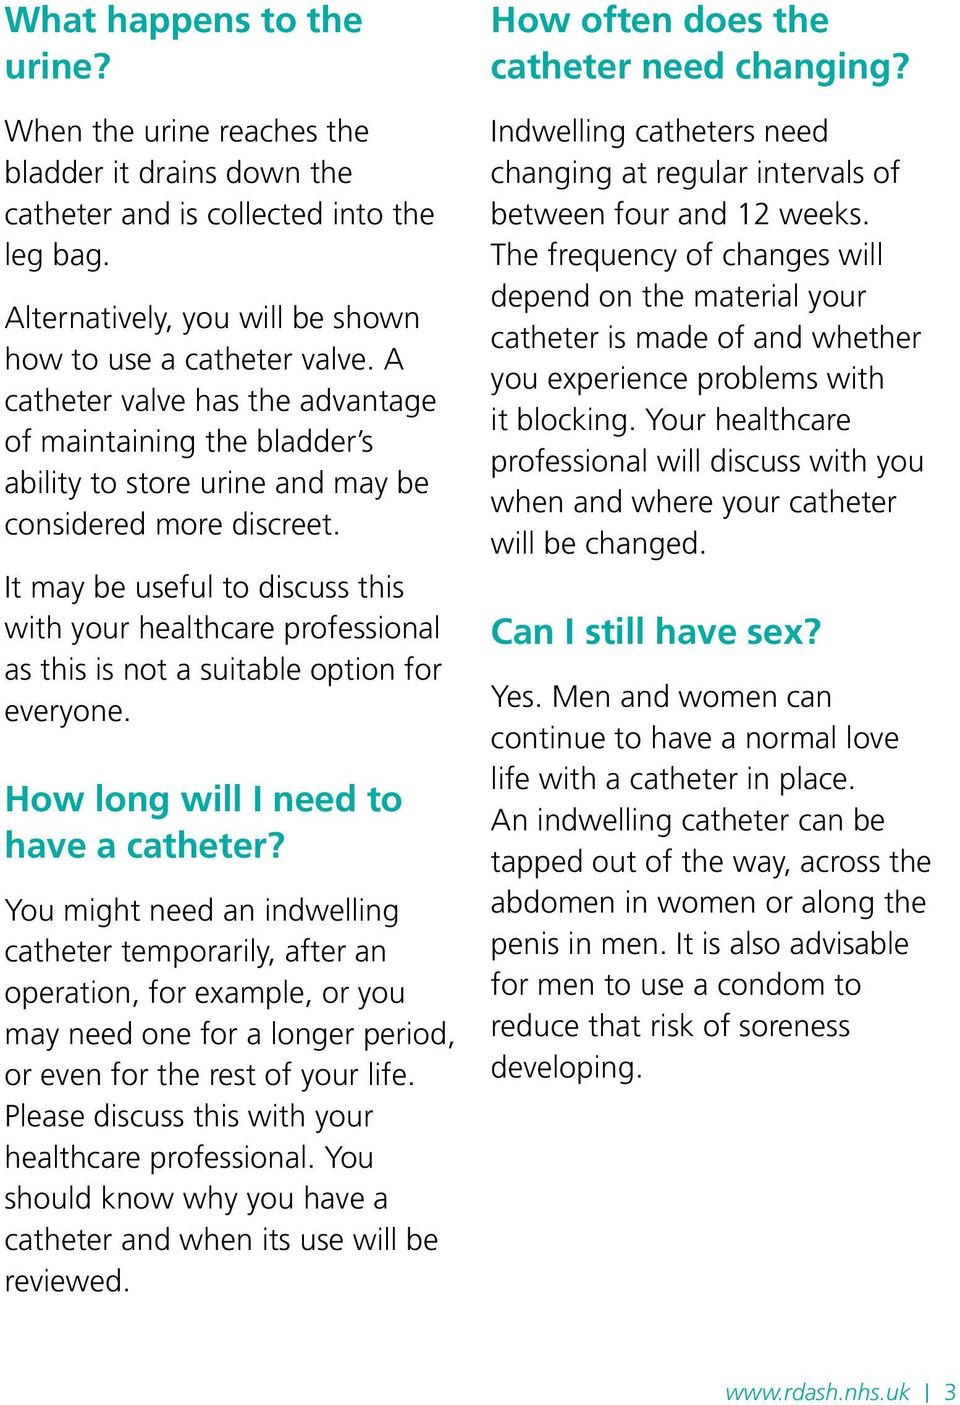 It may be useful to discuss this with your healthcare professional as this is not a suitable option for everyone. How long will I need to have a catheter?